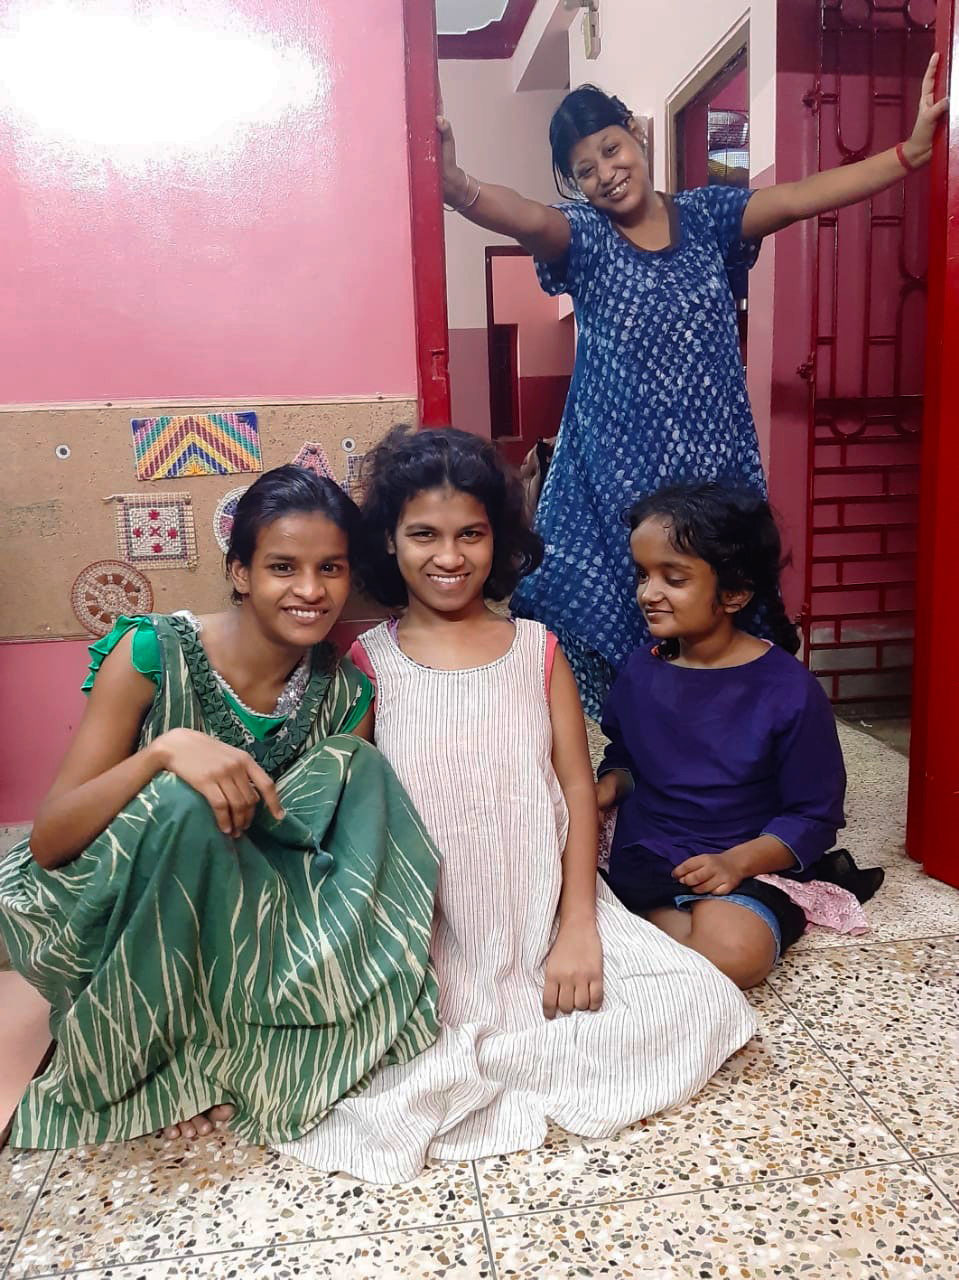 shuktara - girls of Lula Bari